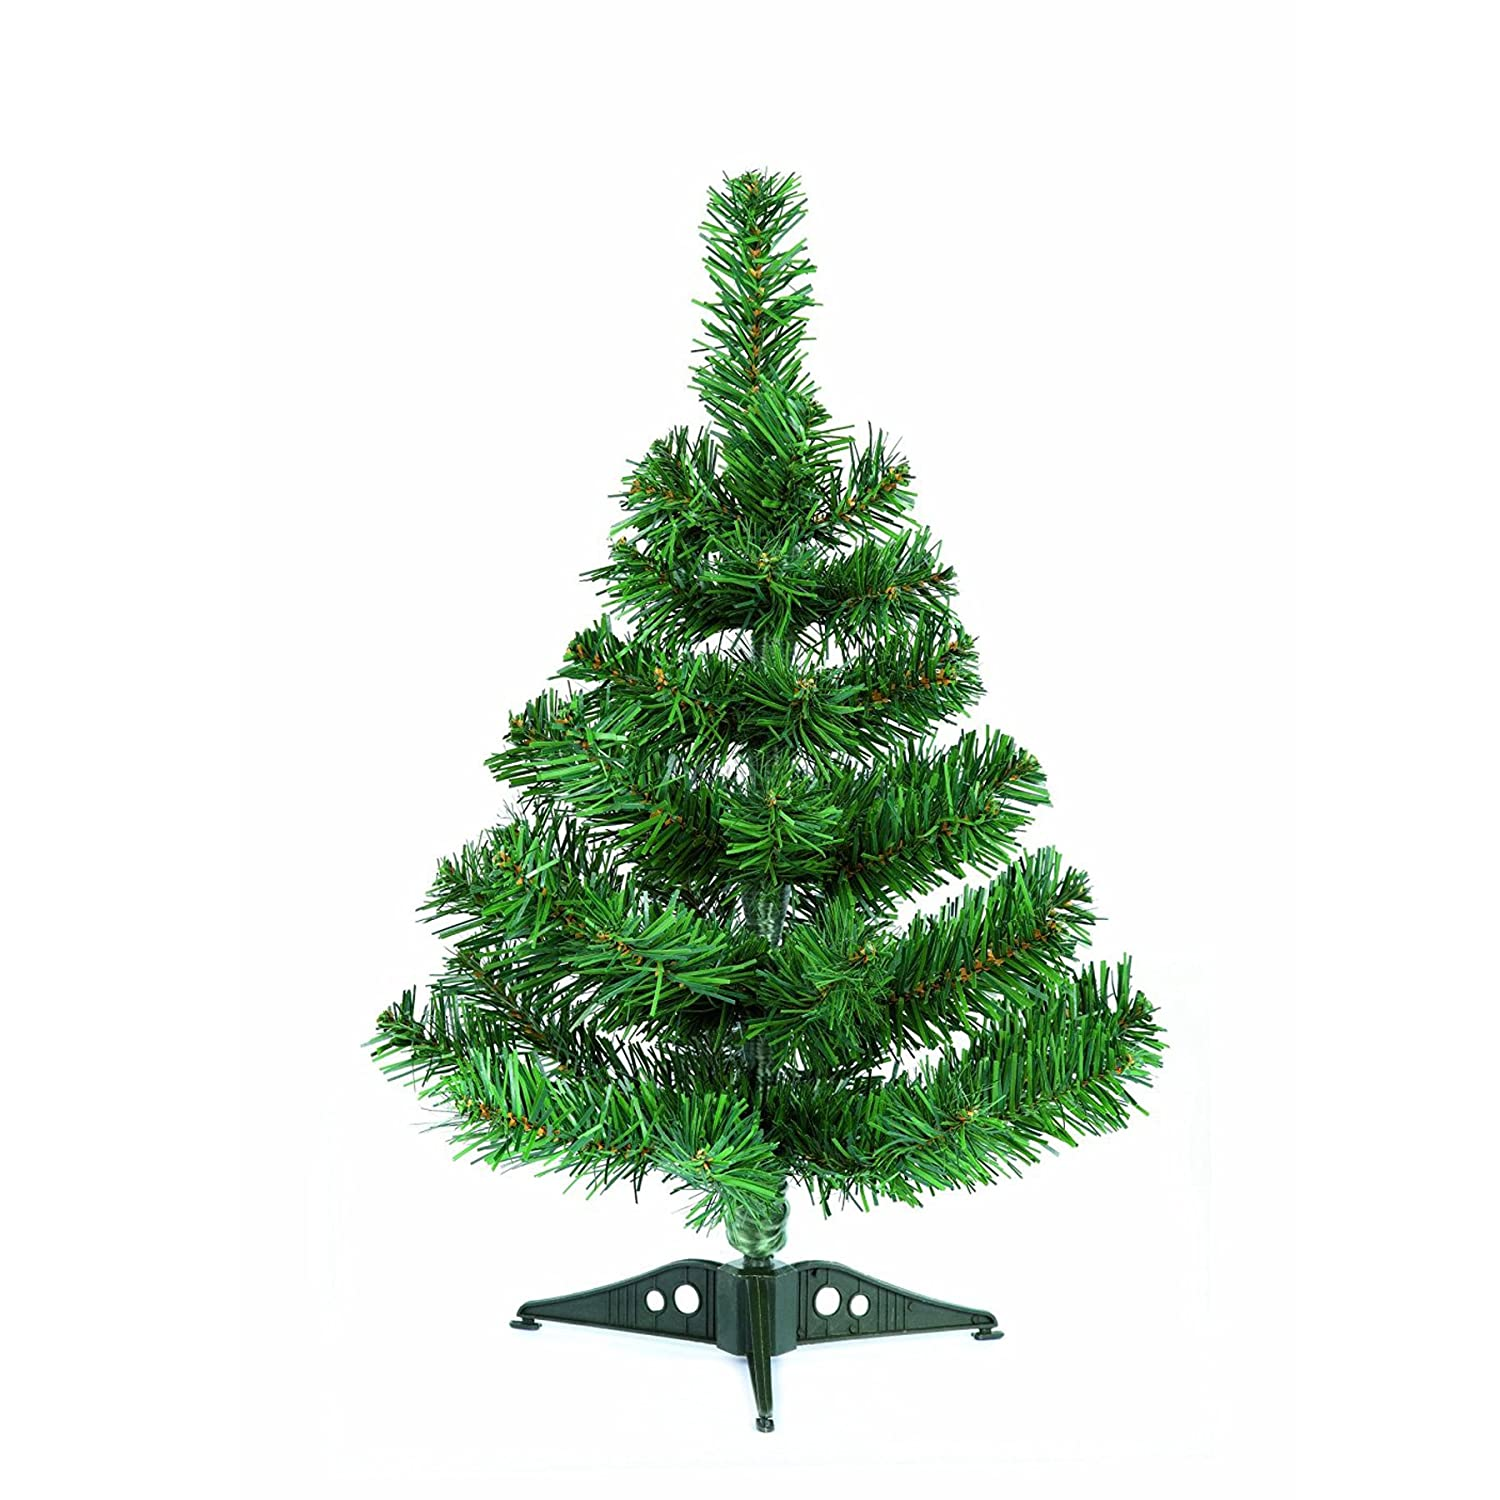 60cm Table Top Christmas Tree Indoor Use Home Office School Snow White